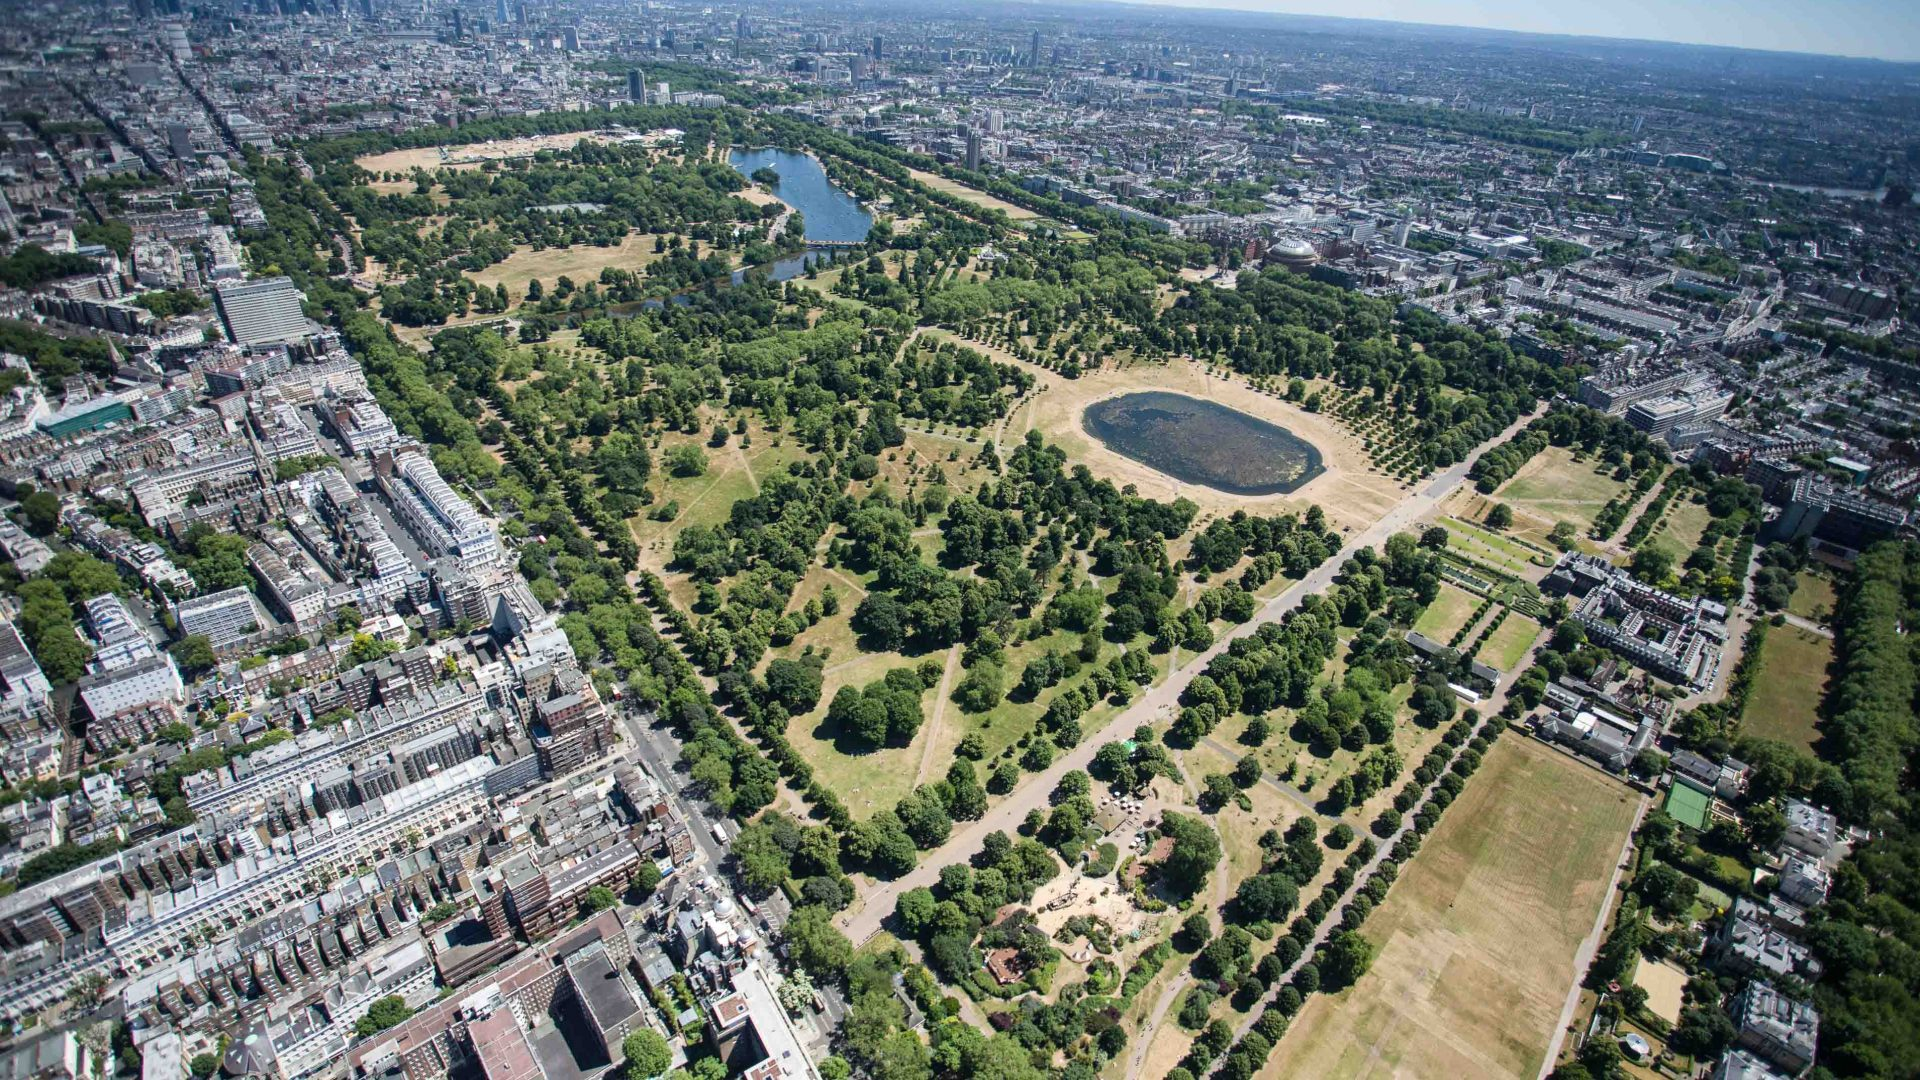 London National Park City: An aerial photo shows Hyde Park in London.